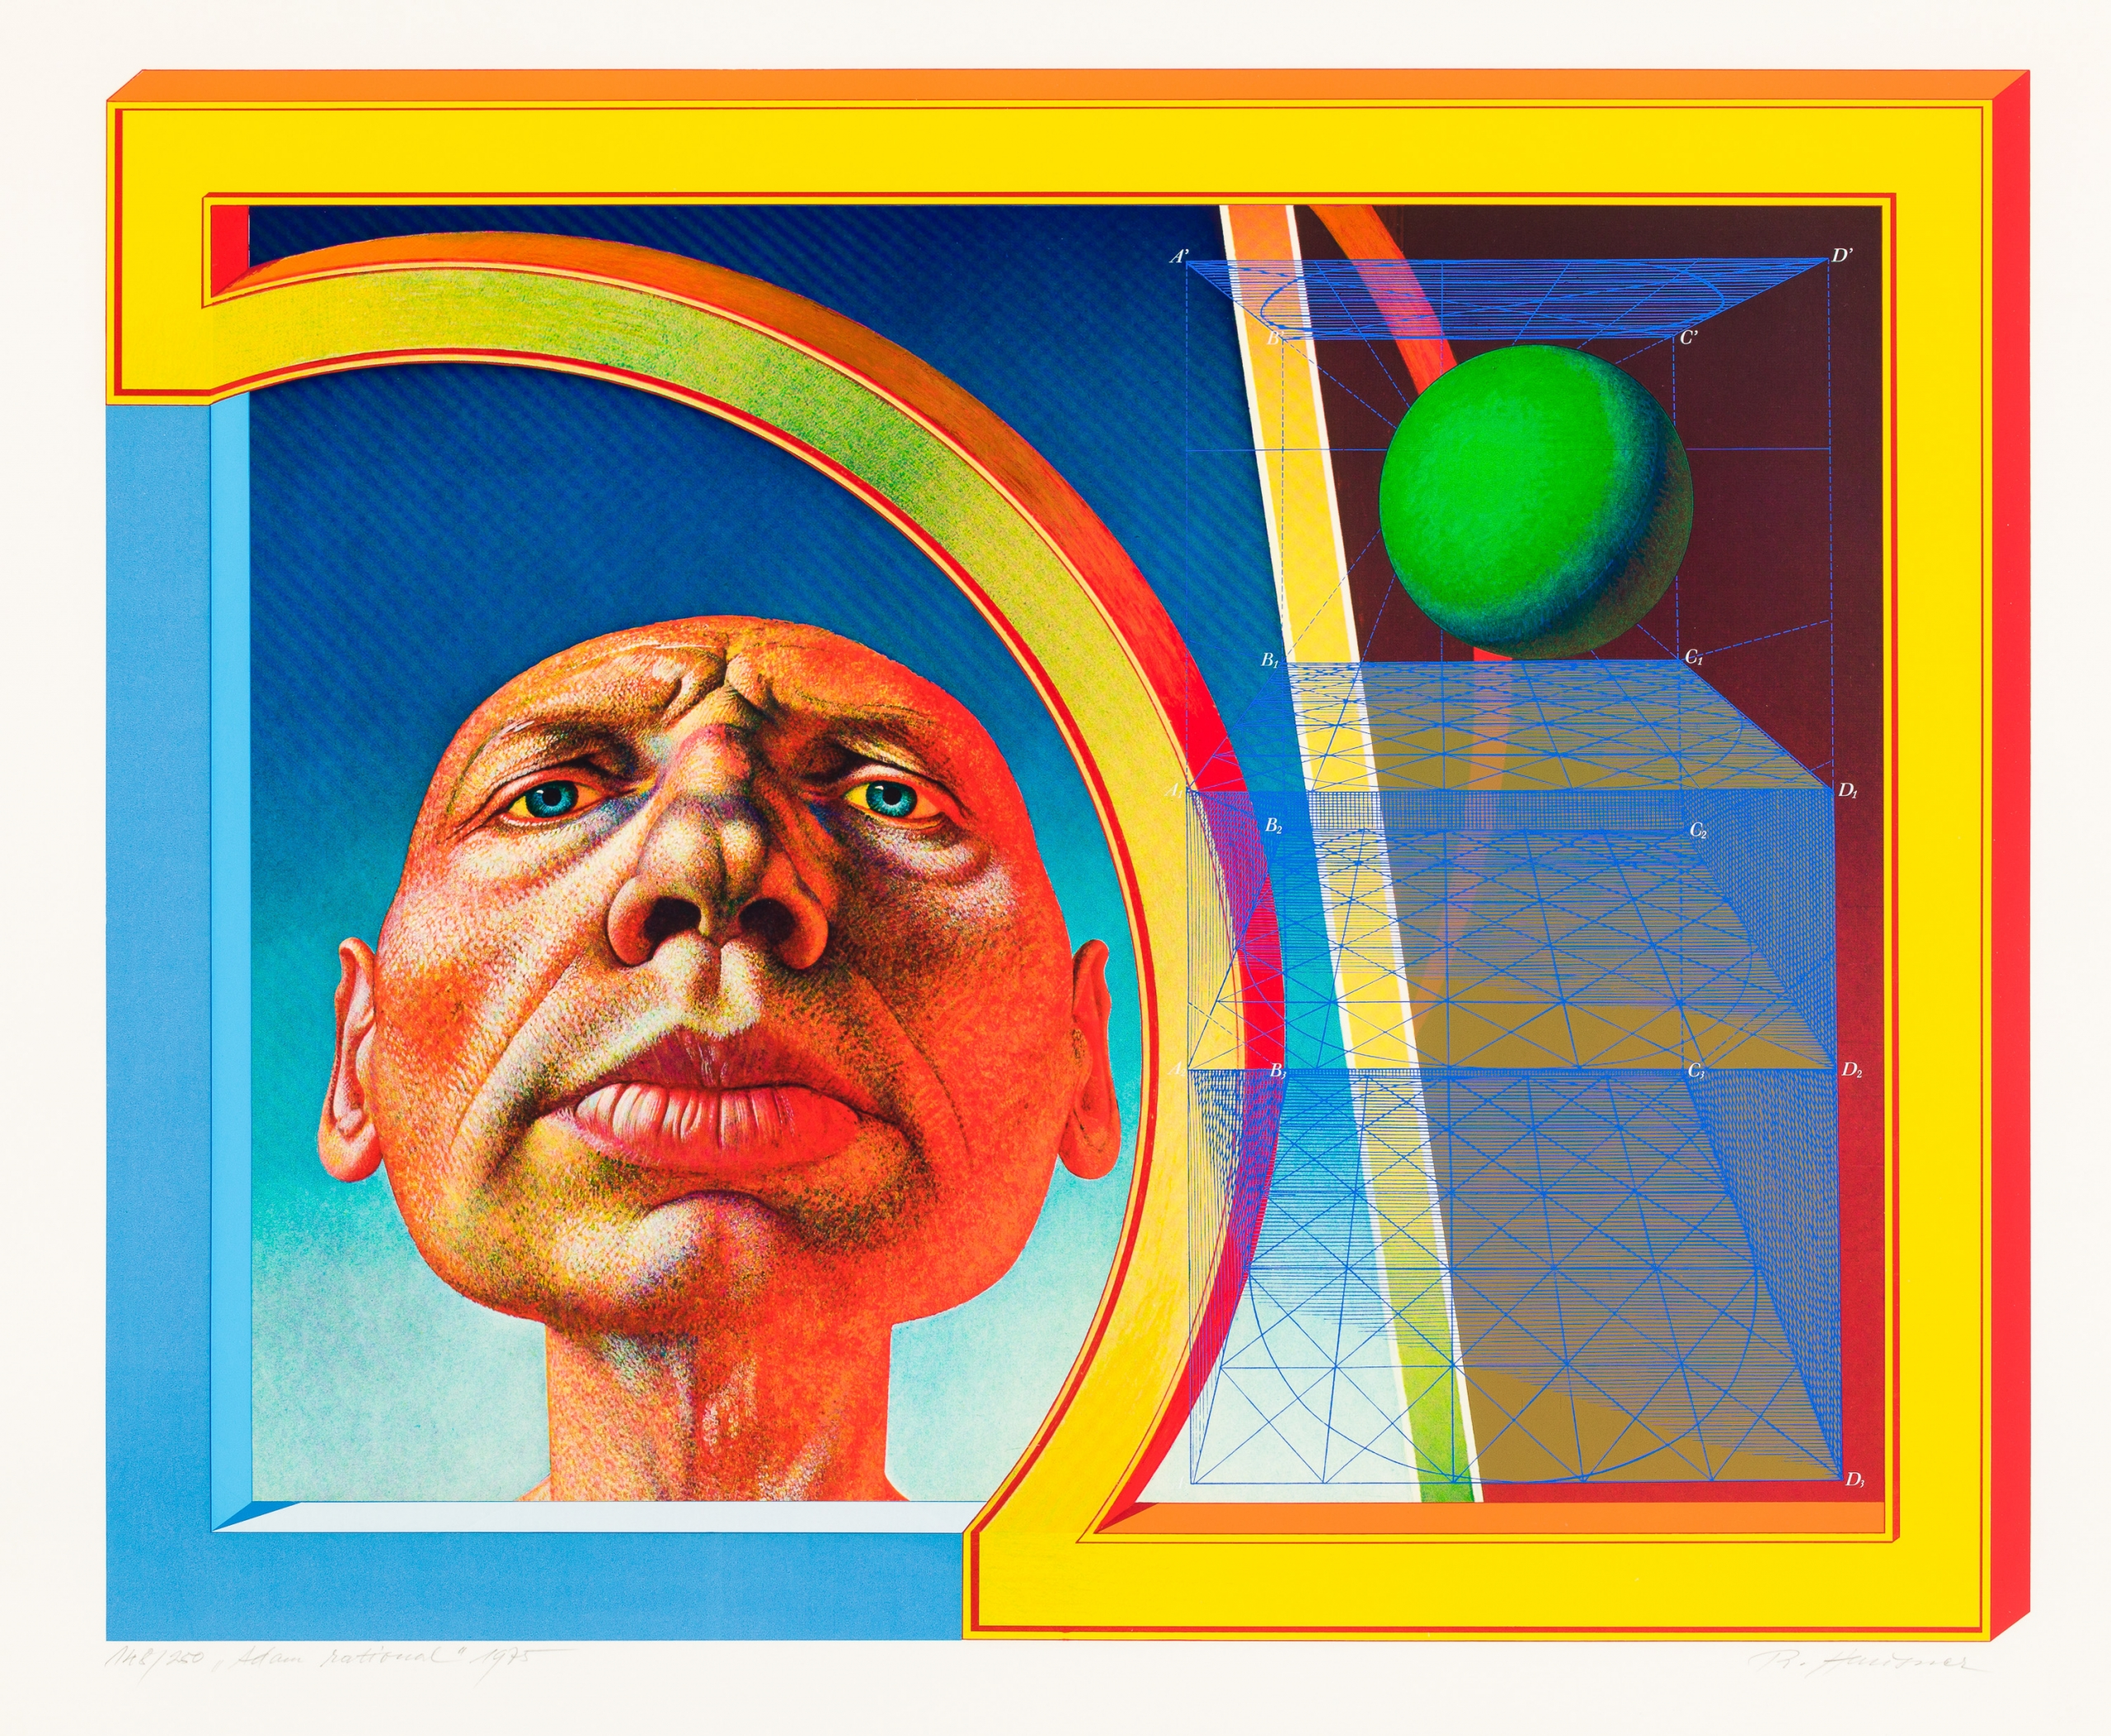 Rudolf Hausner, Adam rational